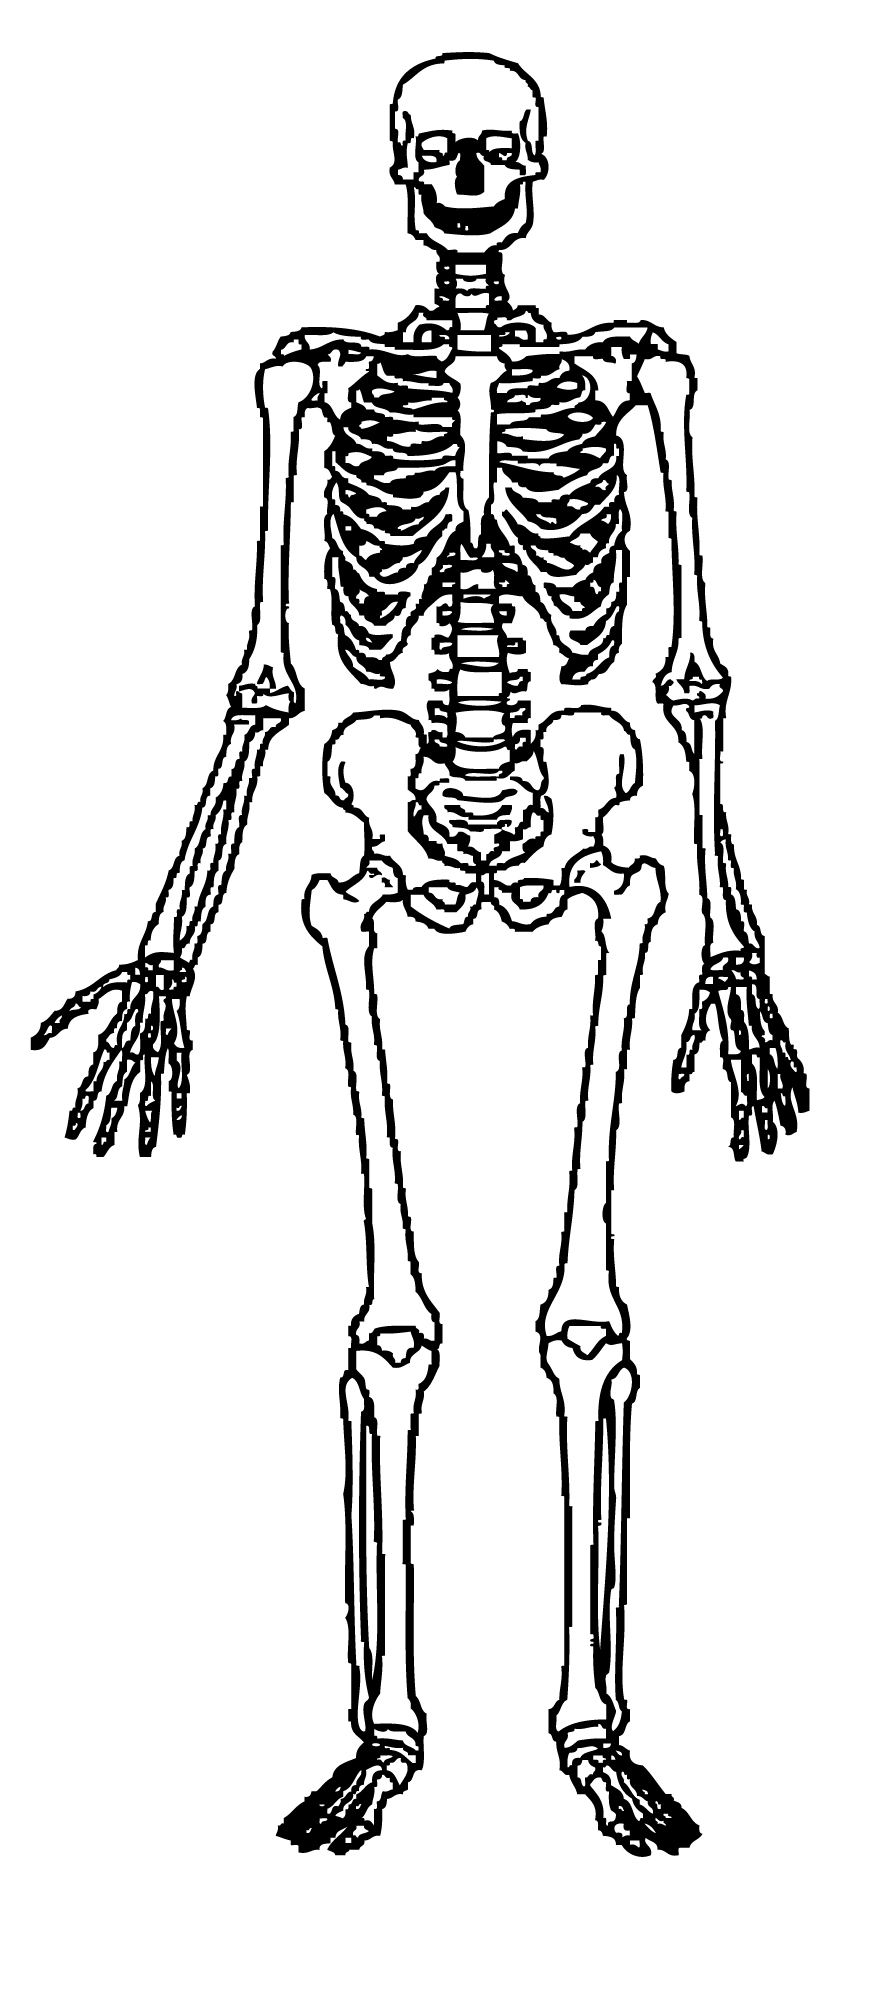 hight resolution of grade 5 science worksheets human body - Clip Art Library